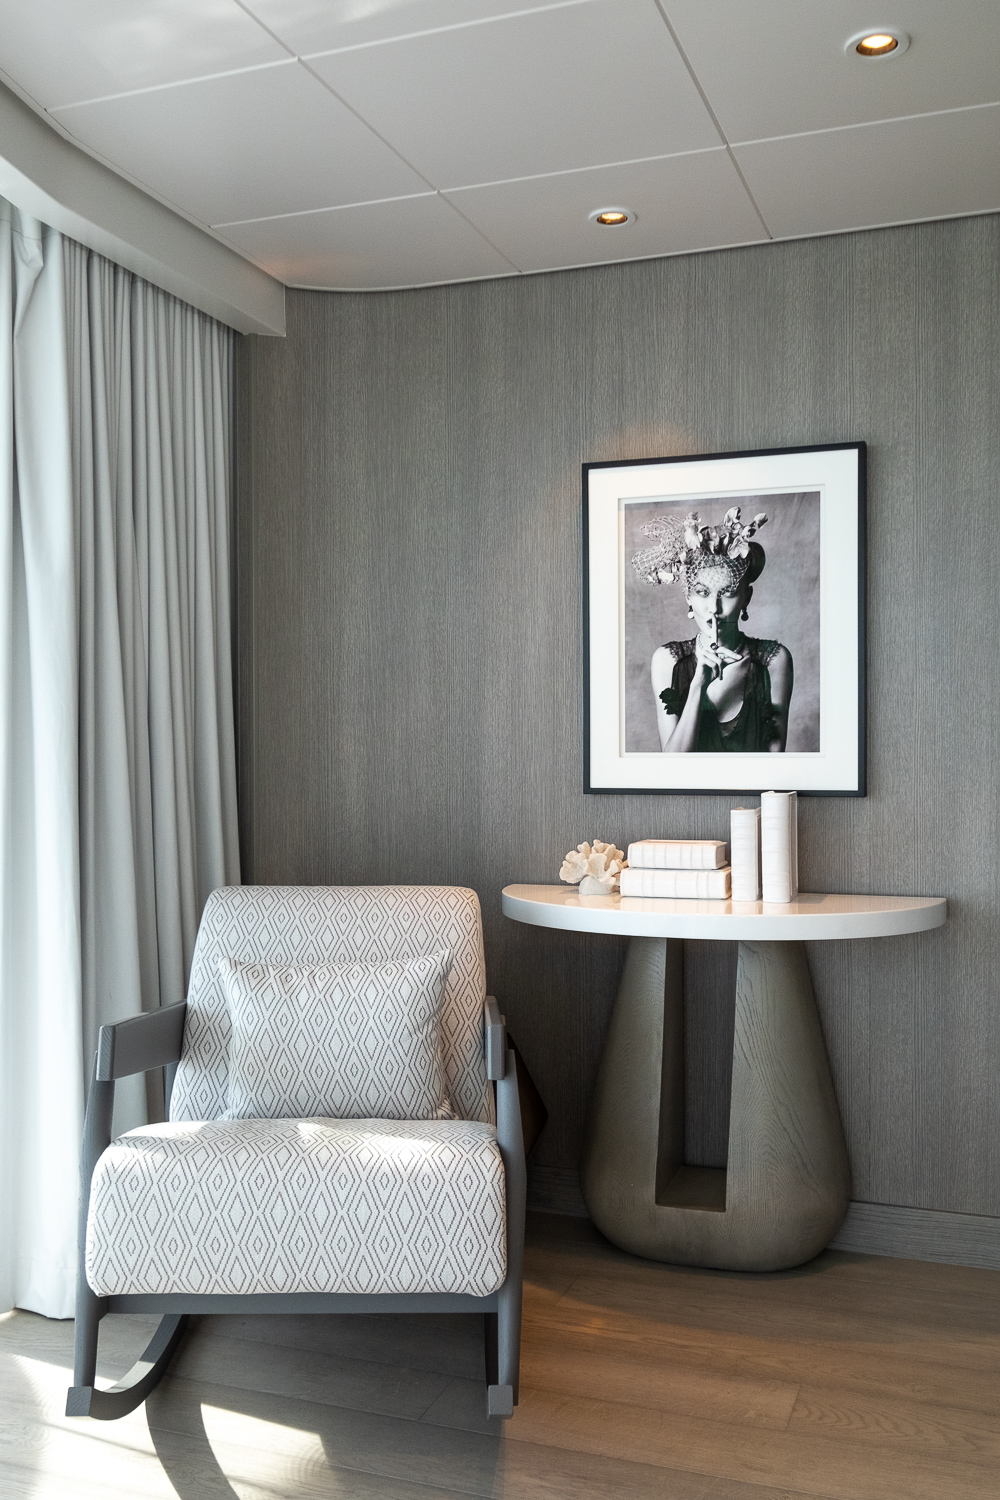 Suites designed by Kelly Hoppen, MBE | 12 reasons to choose Celebrity Edge for your next cruise | Mondomulia